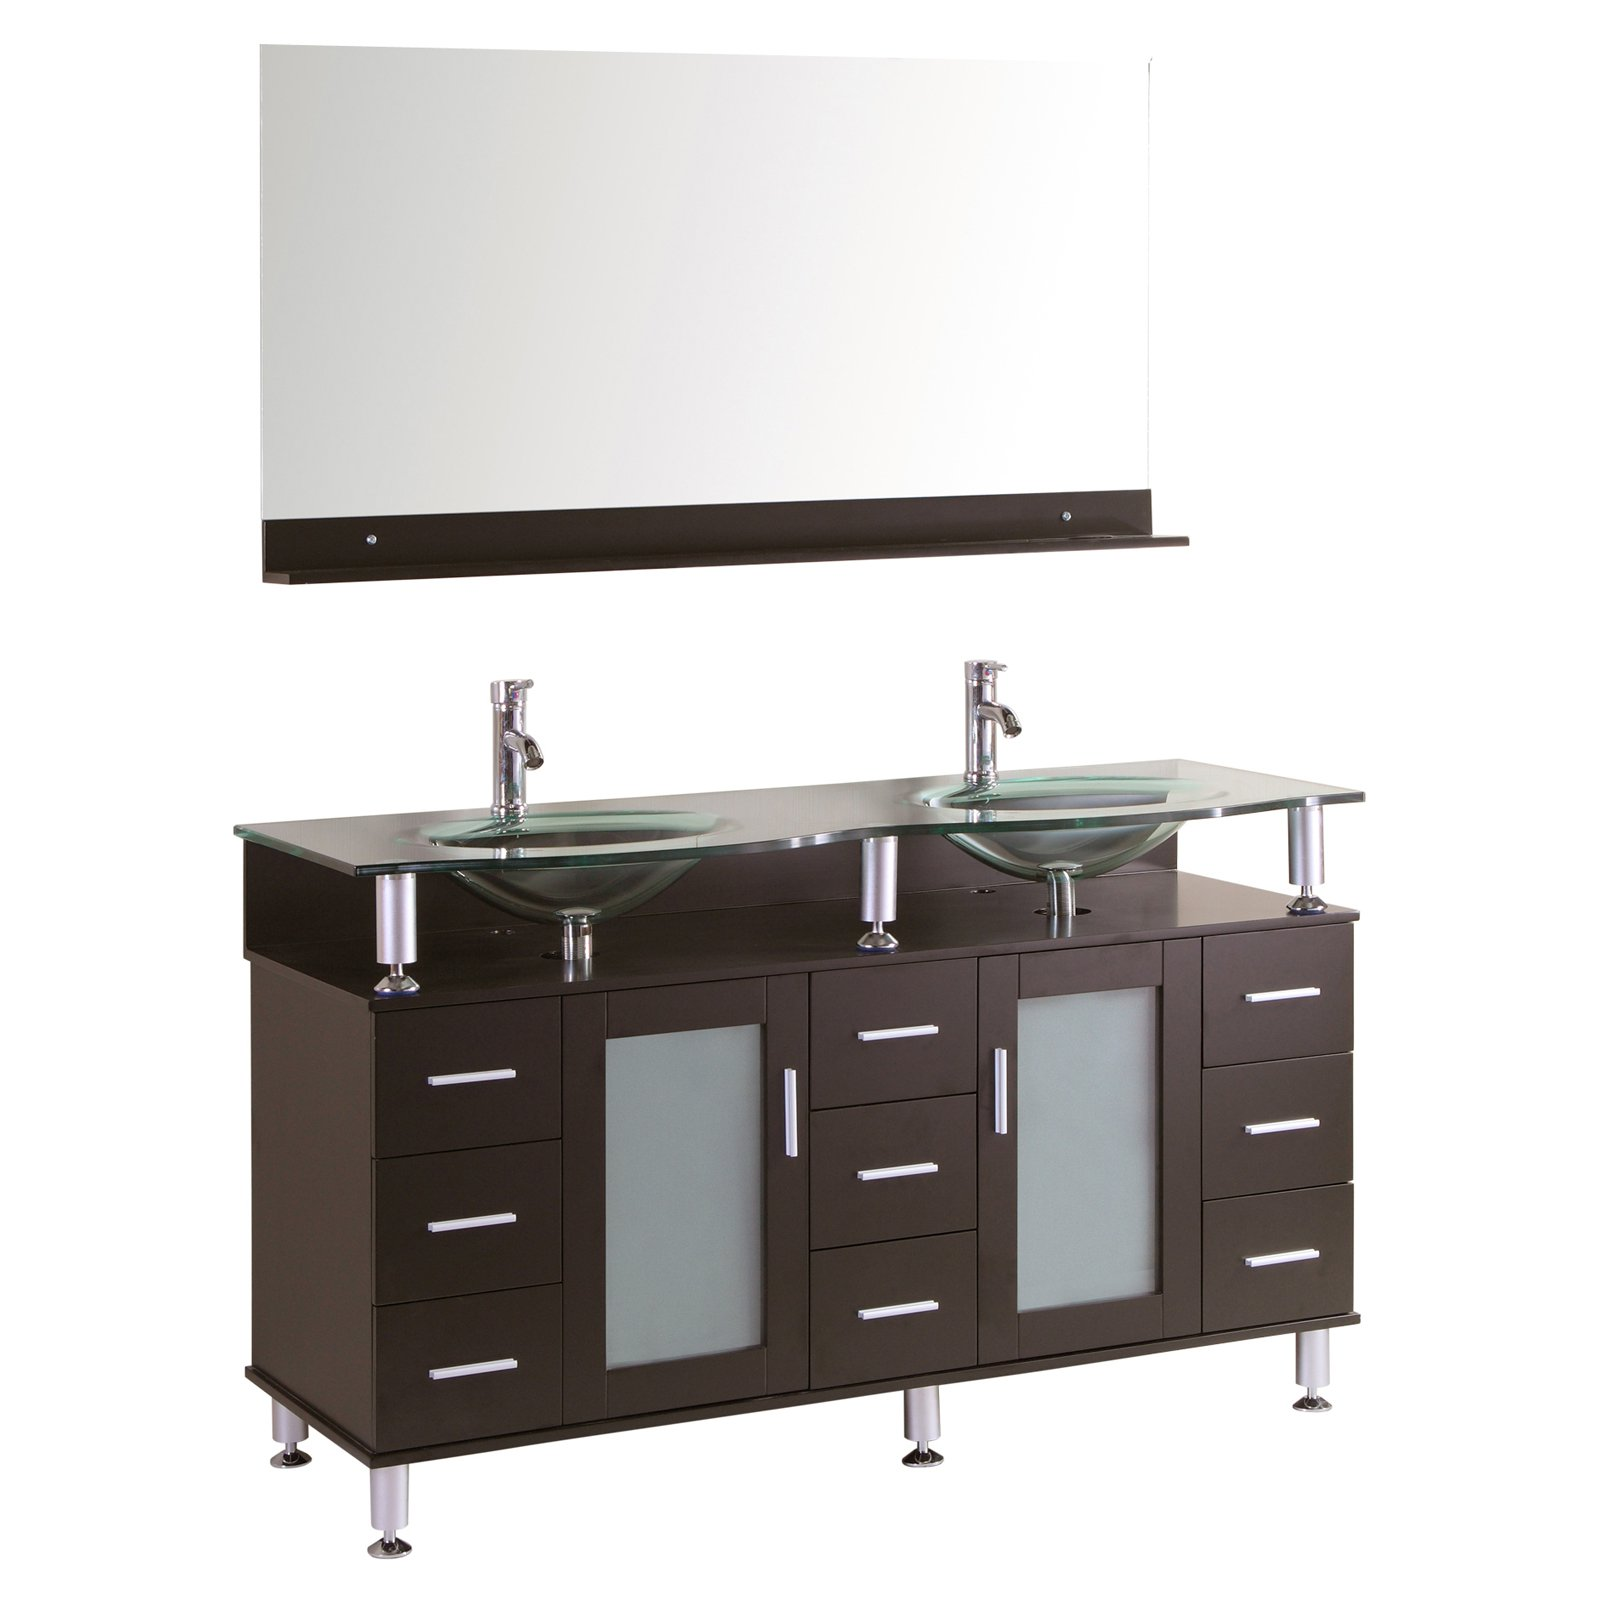 Kokols 9097 60 in. Double Sink Bathroom Vanity